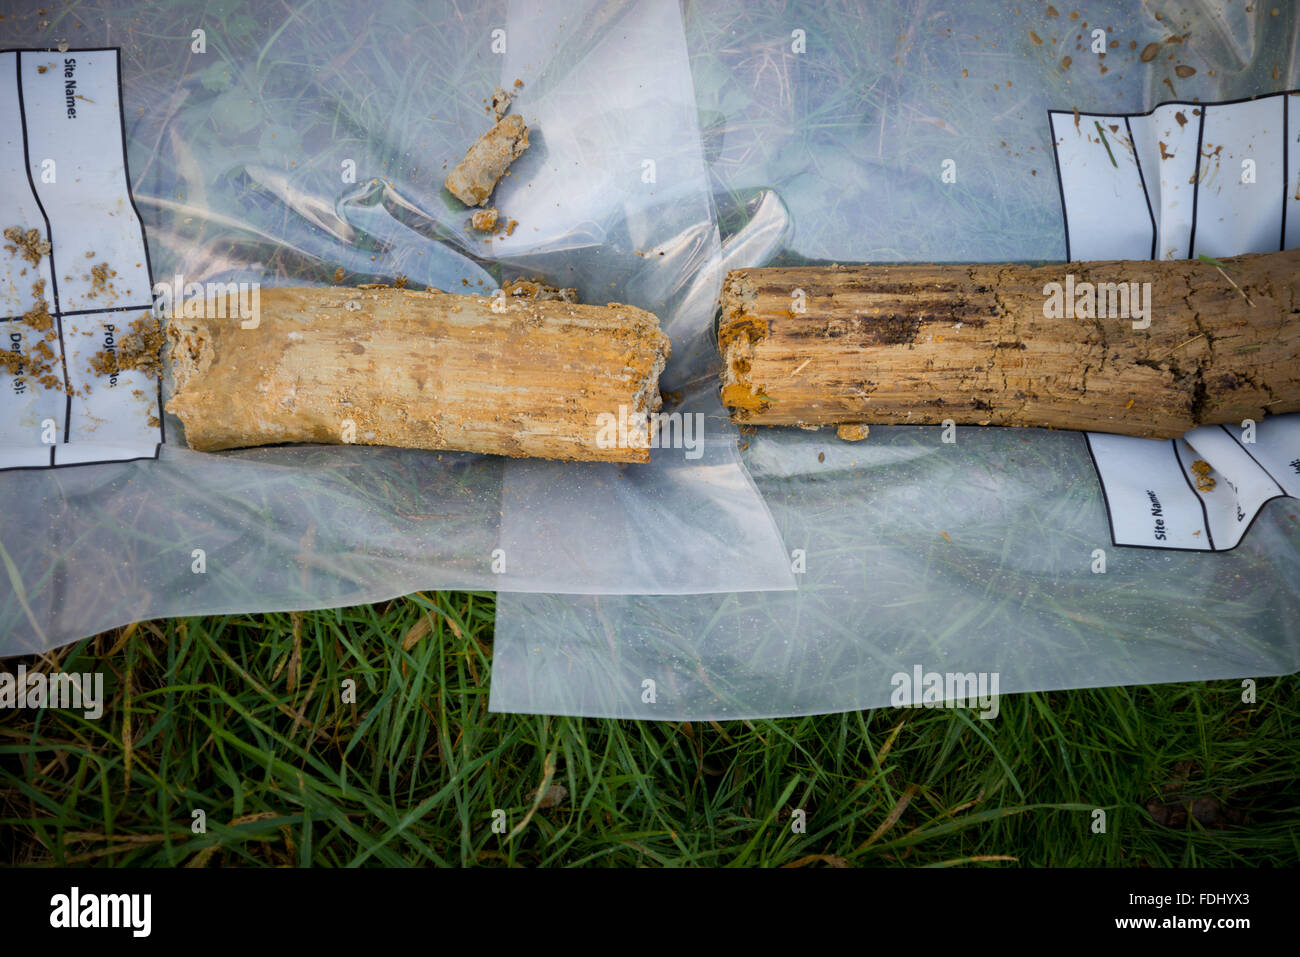 Soil core taken from the ground. Used to determine the soil and rock quality for building purposes. Soil report - Stock Image